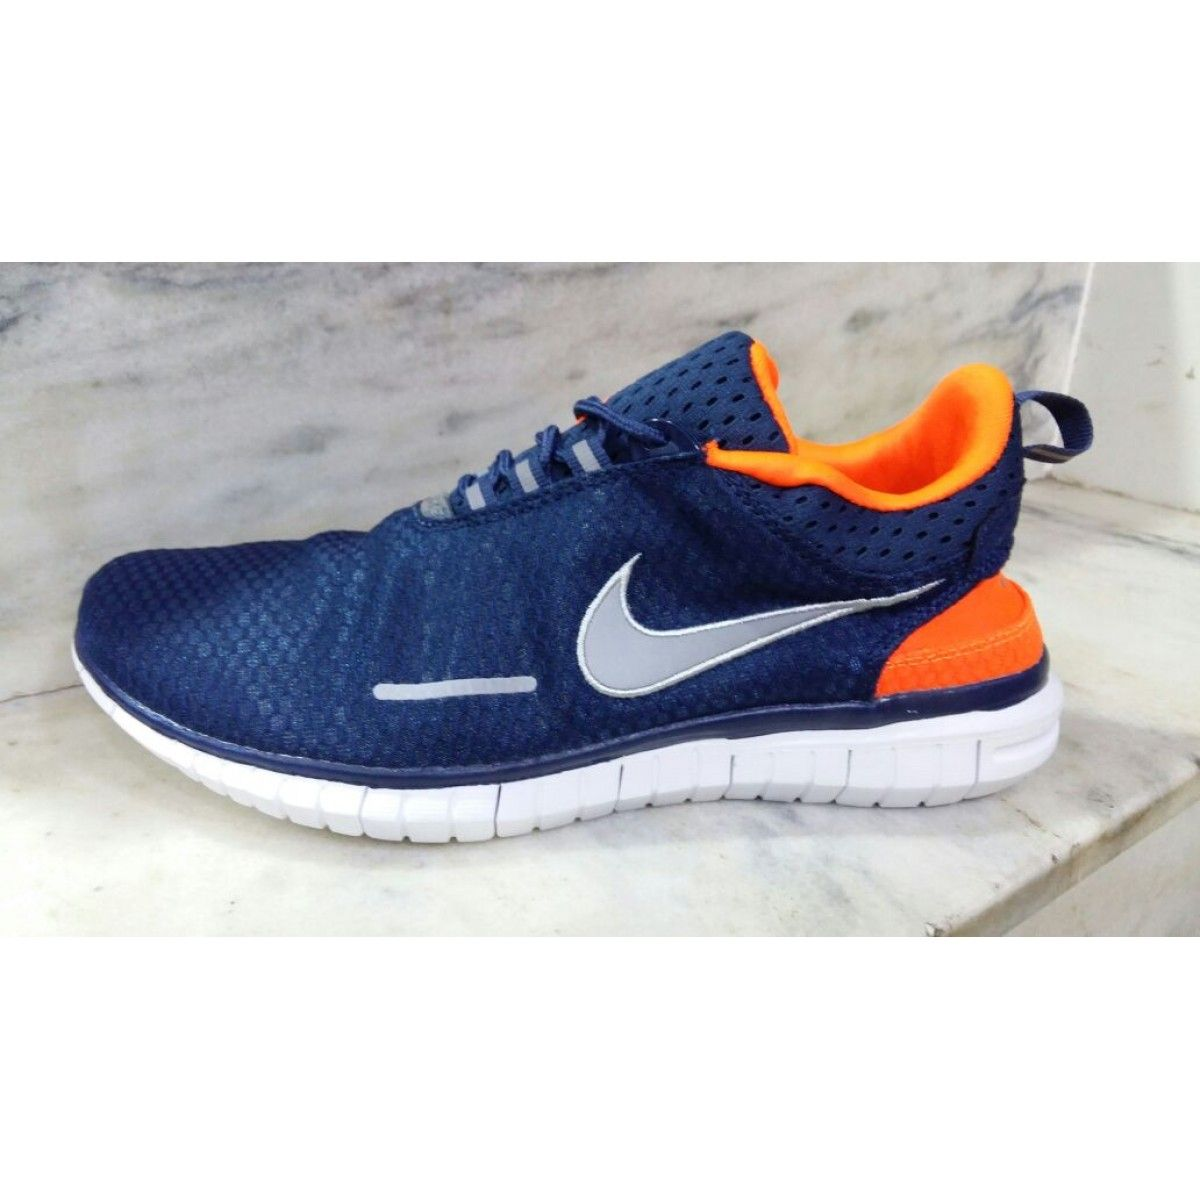 Cheap Nike FS Lite Run 3 Women's JD Sports